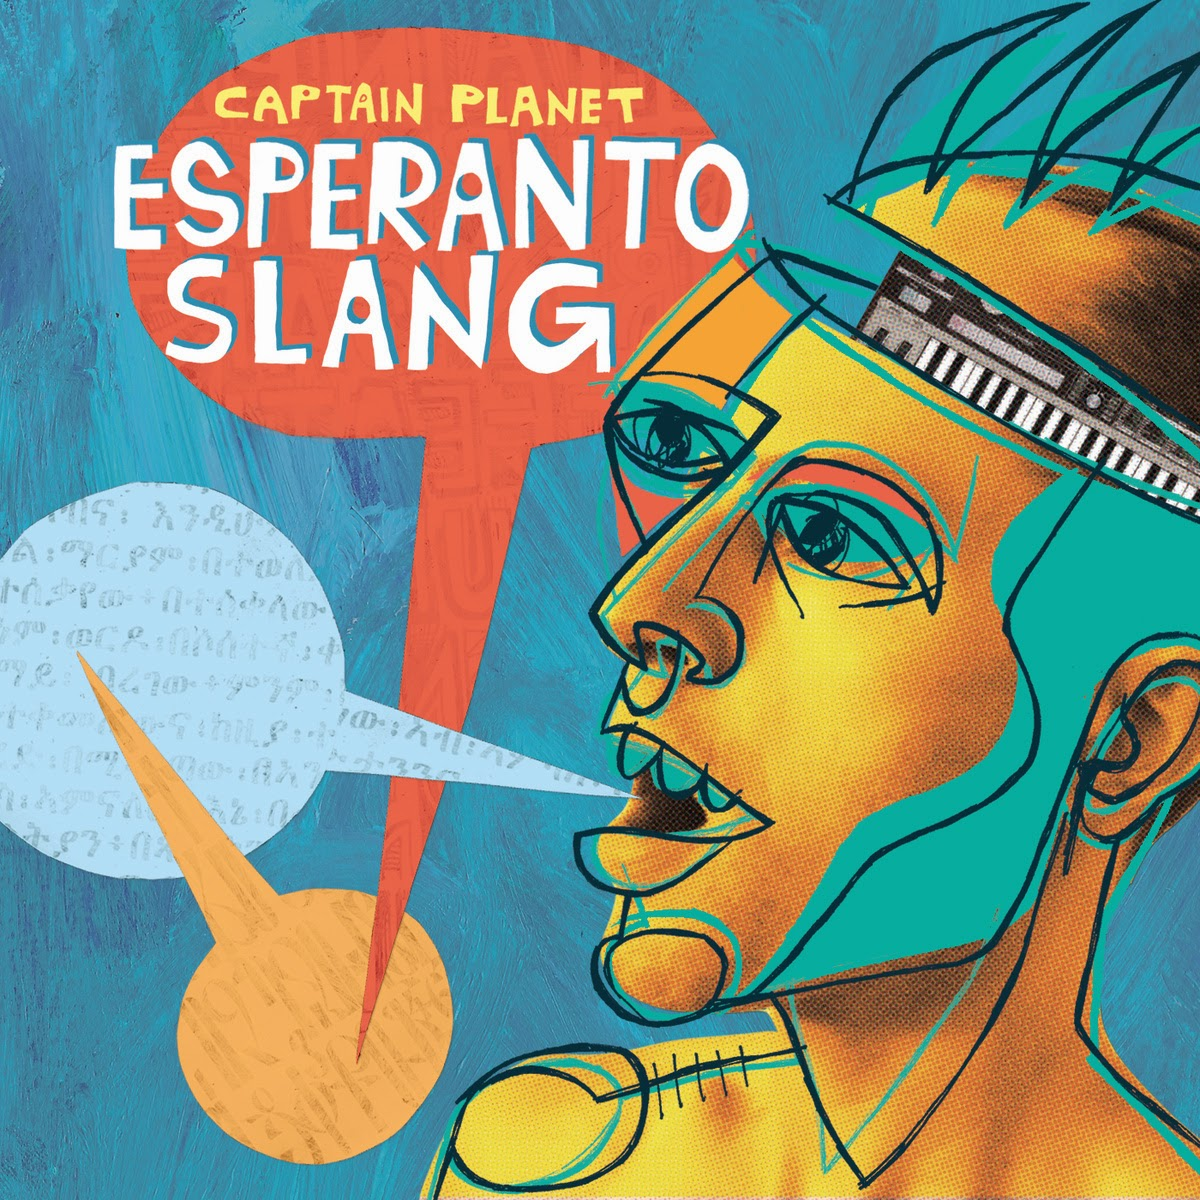 http://www.d4am.net/2014/10/captain-planet-esperanto-slang.html